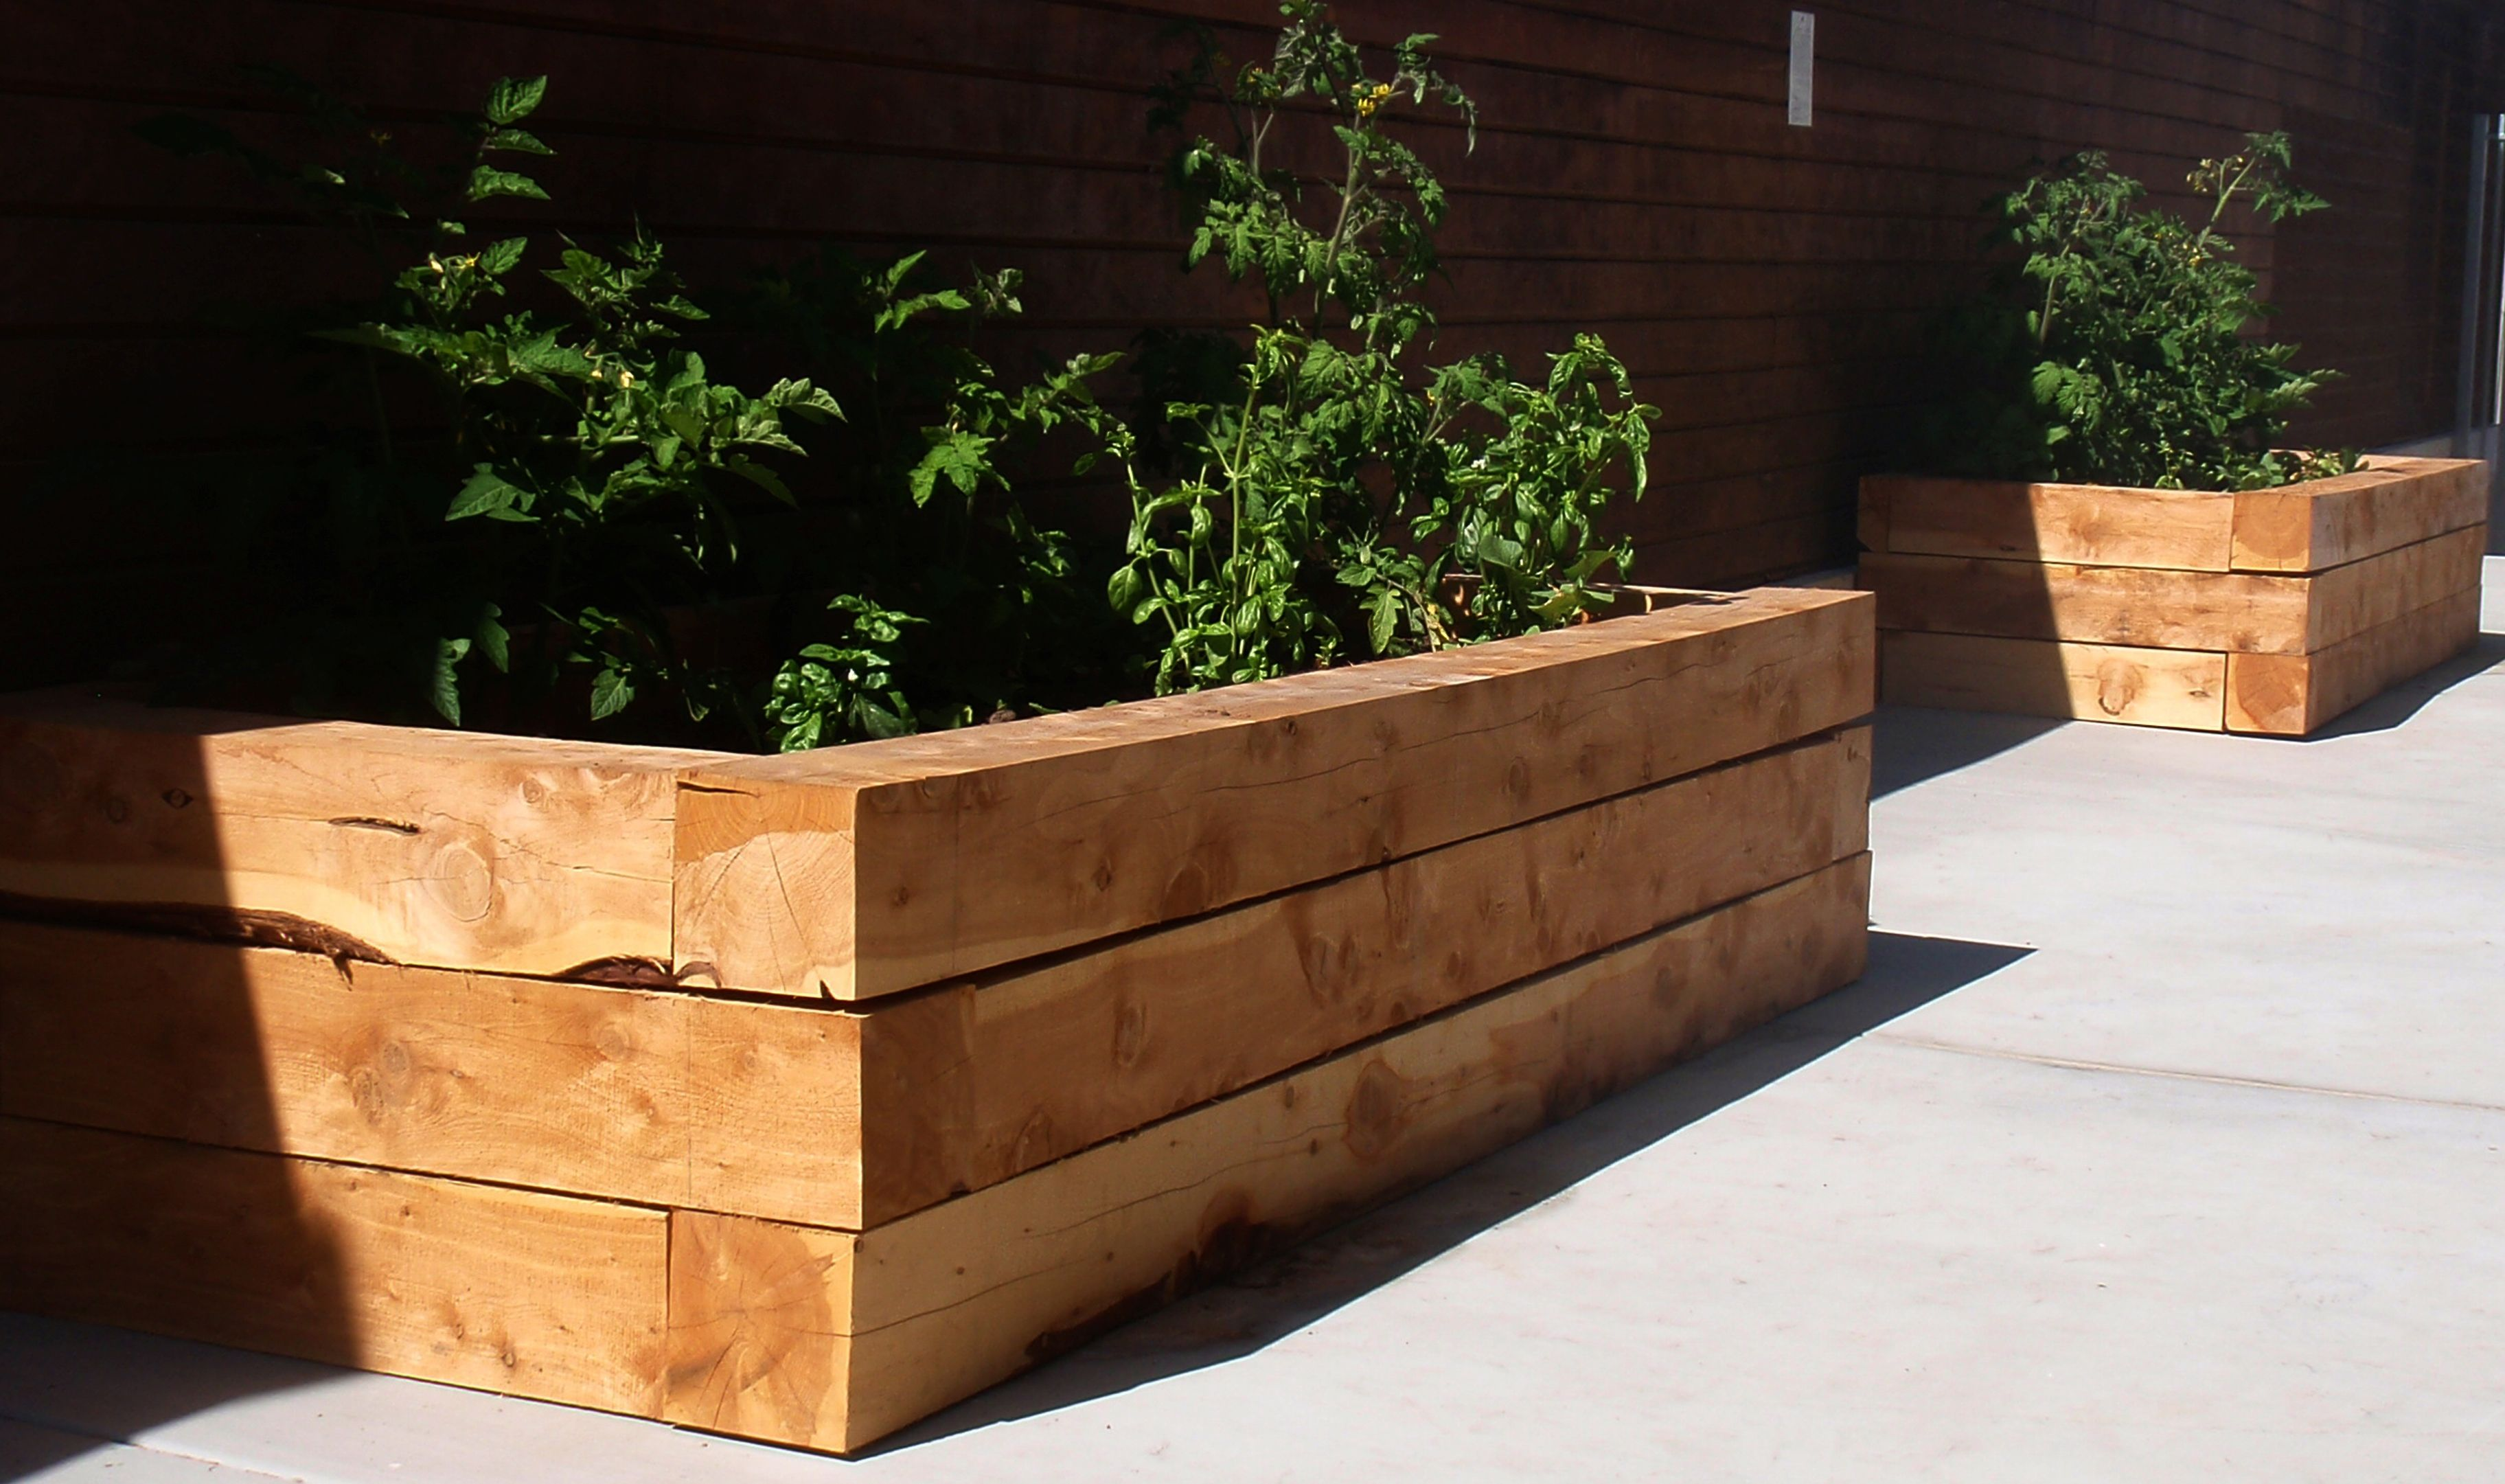 Top 2 Designs For Easy To Build Juniper Raised Beds Diy Planters Outdoor Wooden Planter Boxes Diy Diy Outdoor Planter Boxes